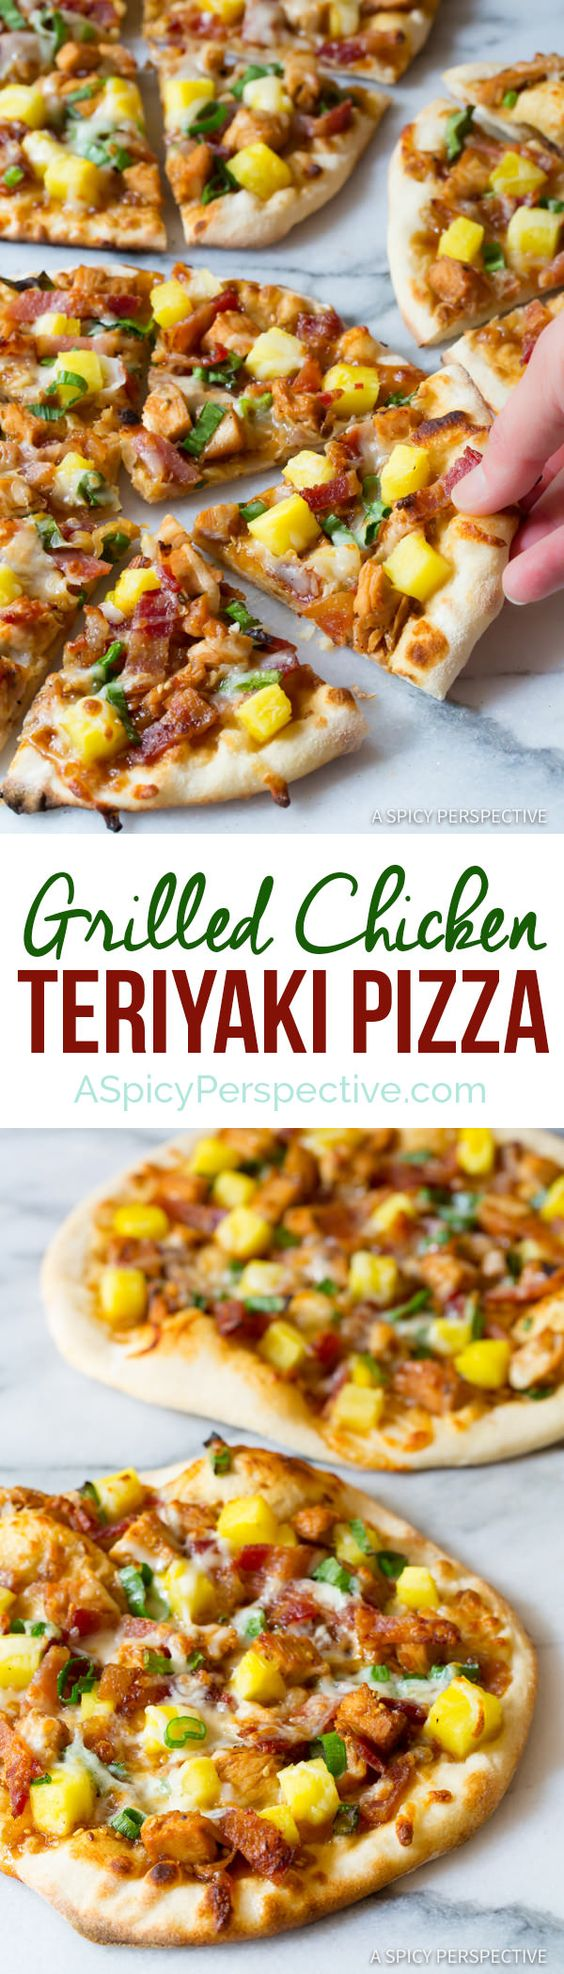 Easy Grilled Chicken Teriyaki Pizza Recipe via A Spicy Perspective